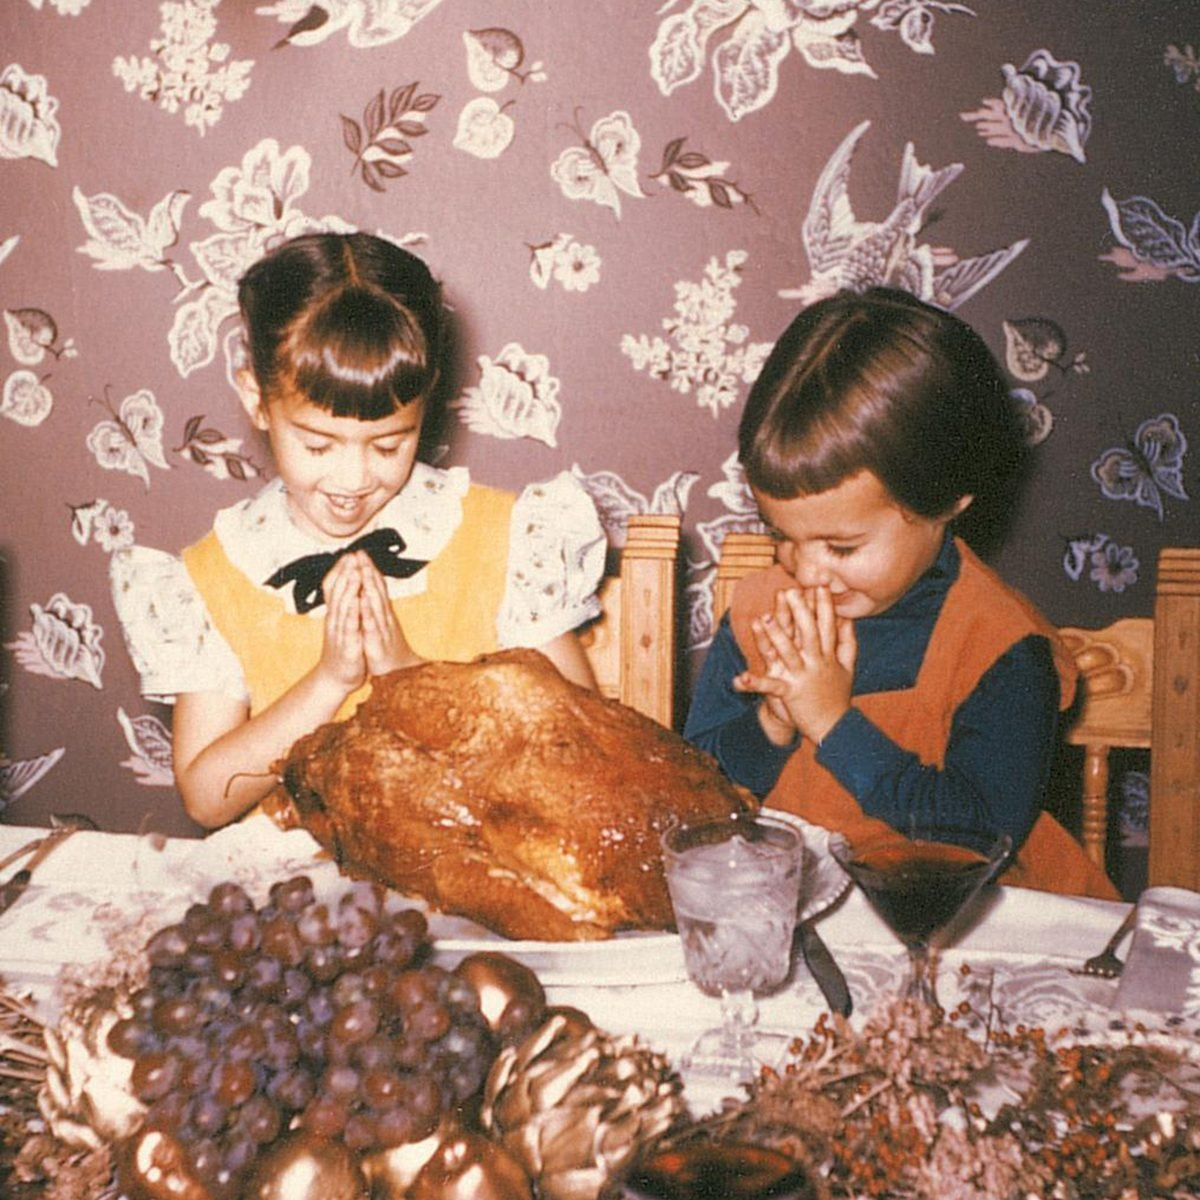 two 1950s sisters laugh while they prey for the turkey on the table